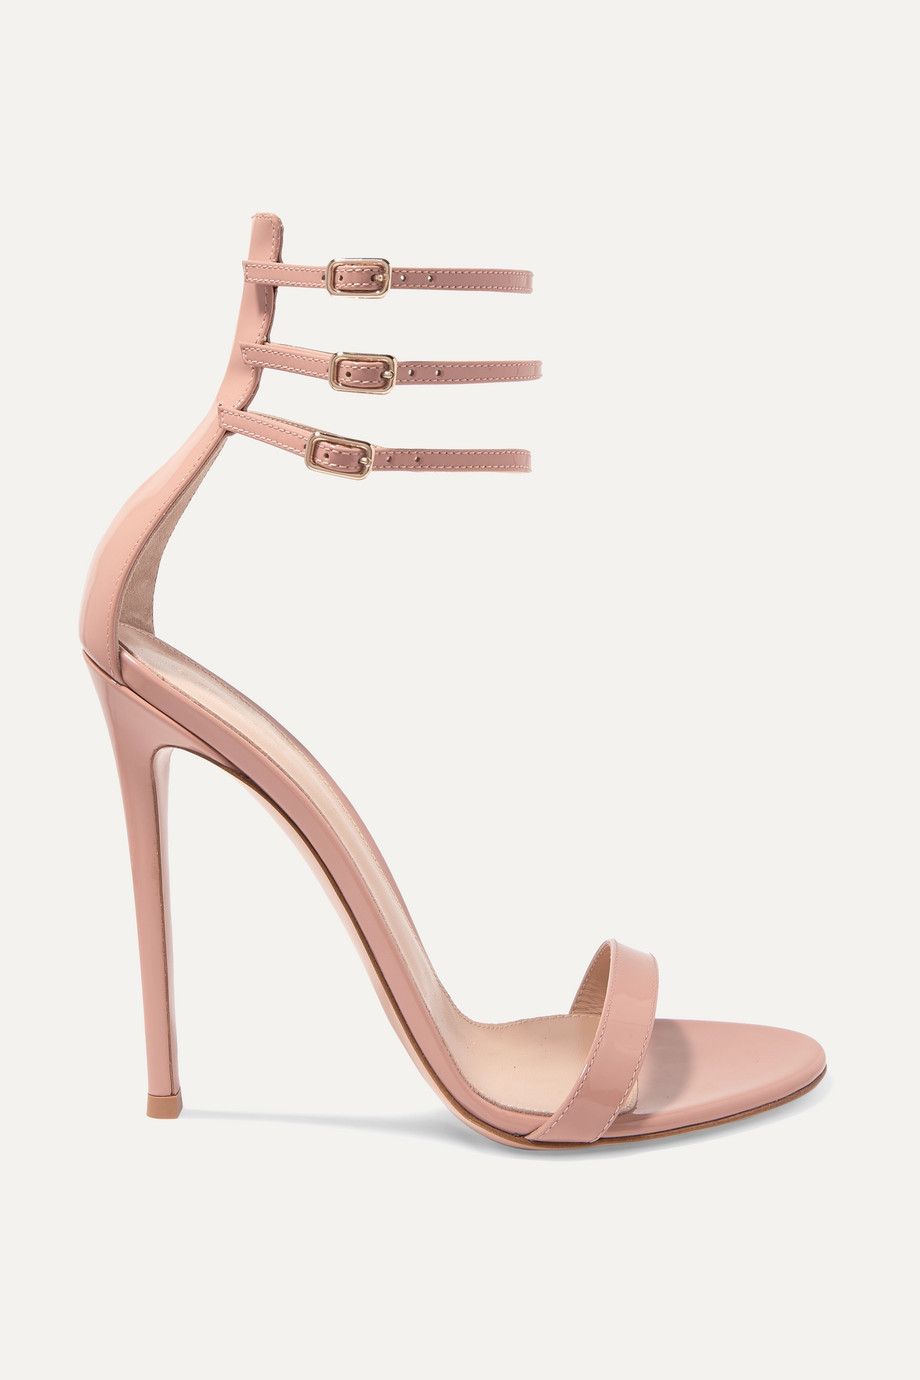 56c5162c1f Gianvito Rossi Lacey 115 patent-leather sandals